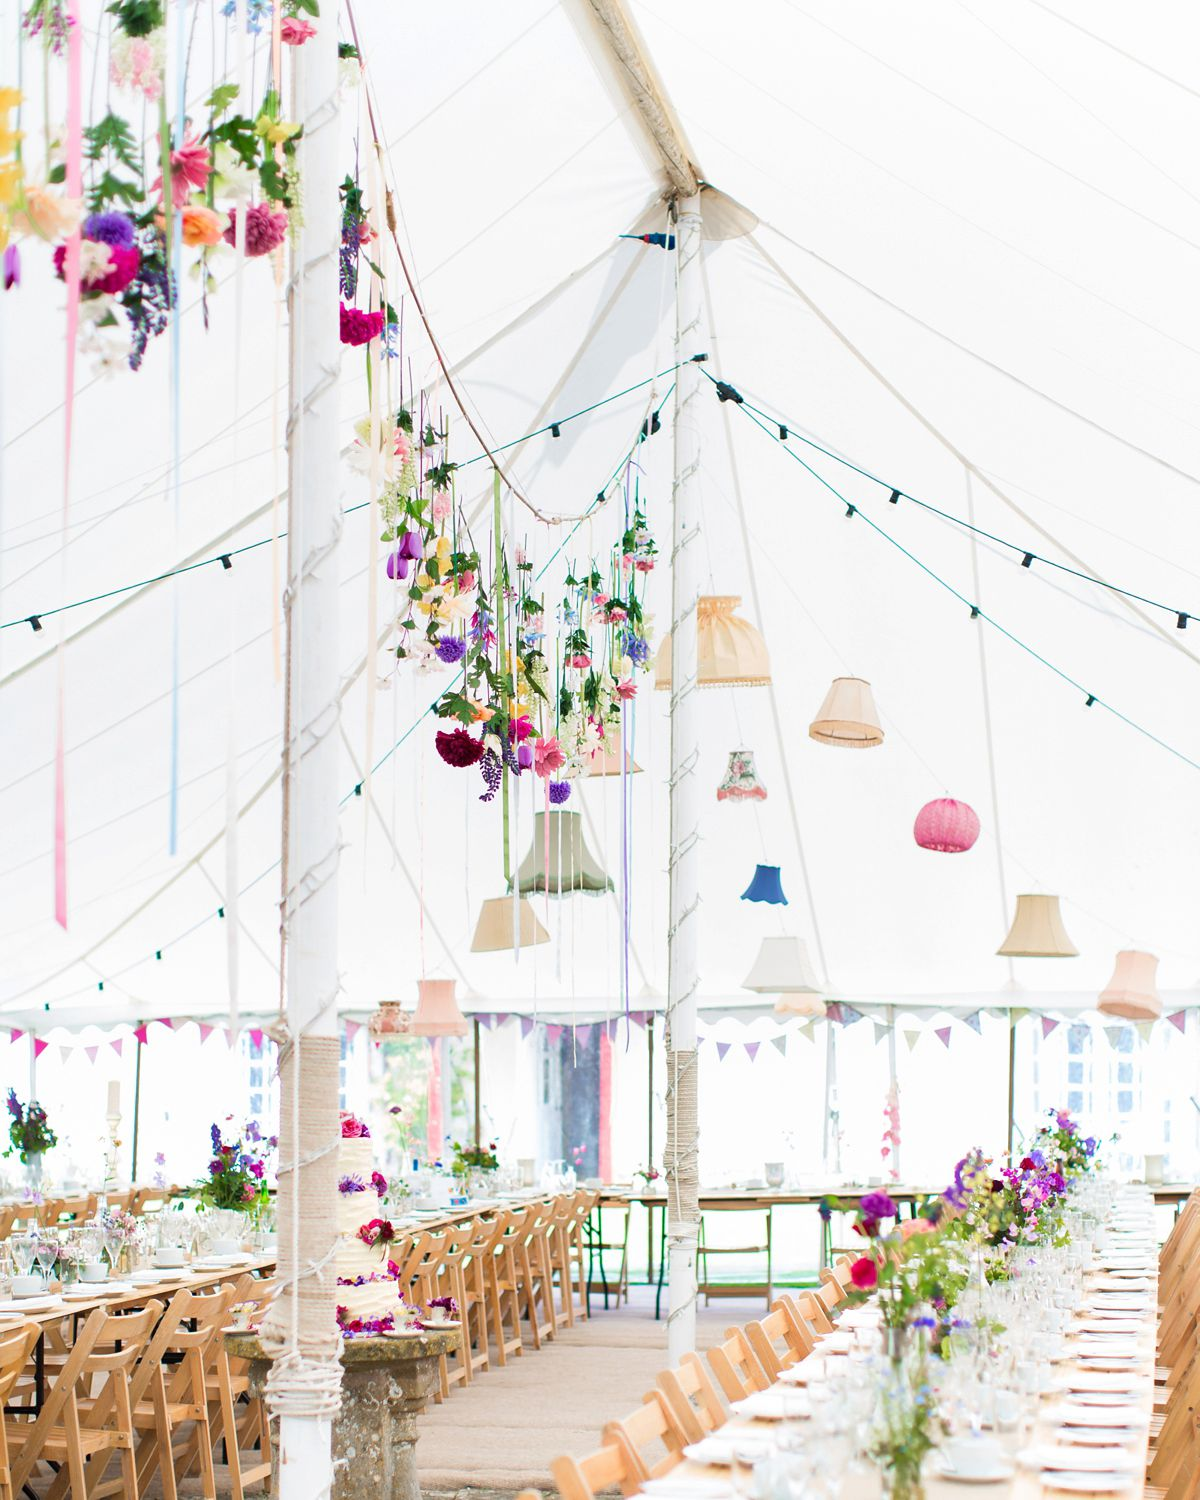 Outdoor Wedding Ceremony Tent: 15 Magical Tent Decor Ideas For An Outdoor Wedding